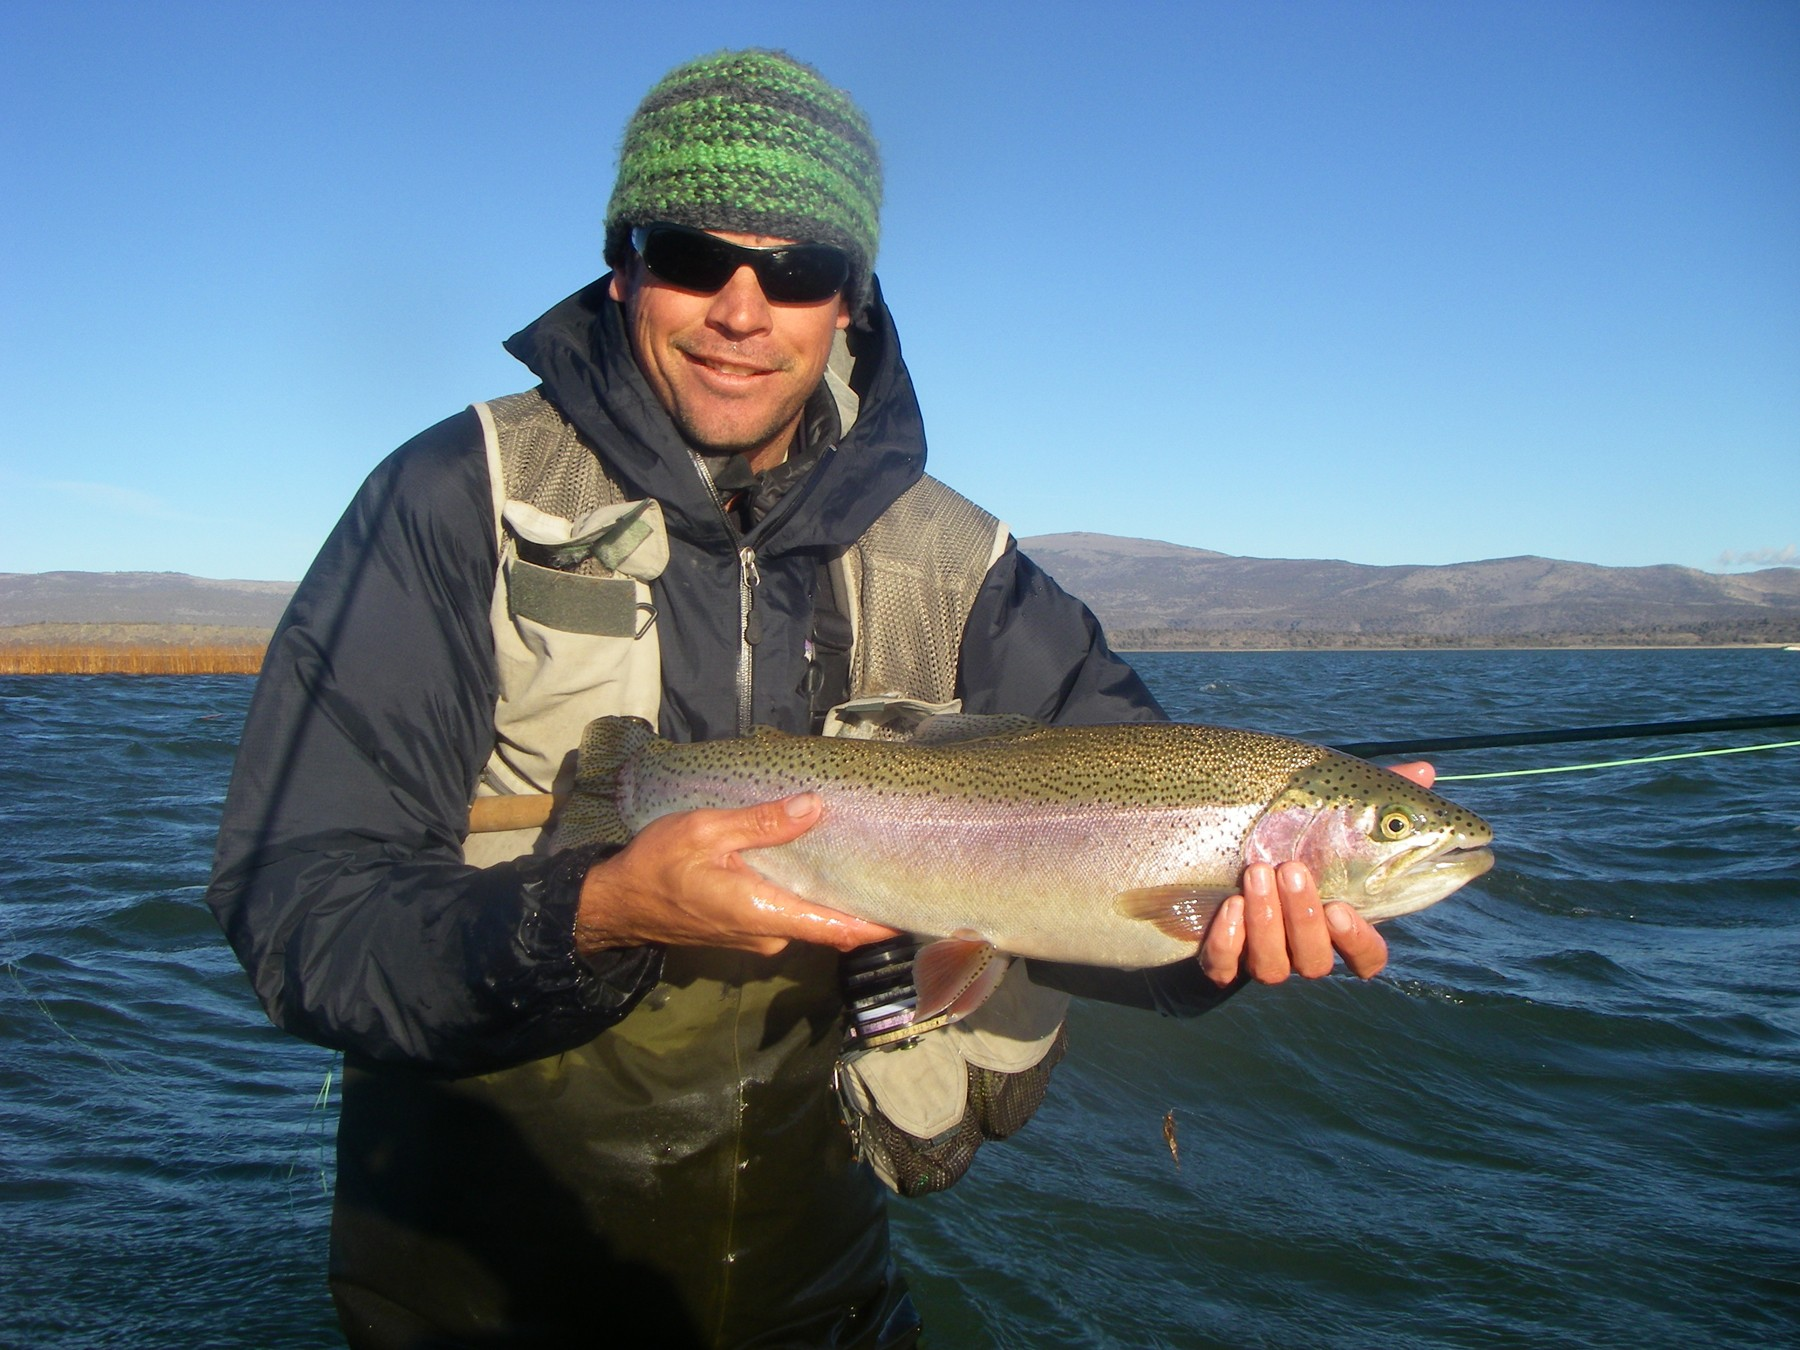 Legal to ship trout and venison out of state california for Freshwater fishing in southern california